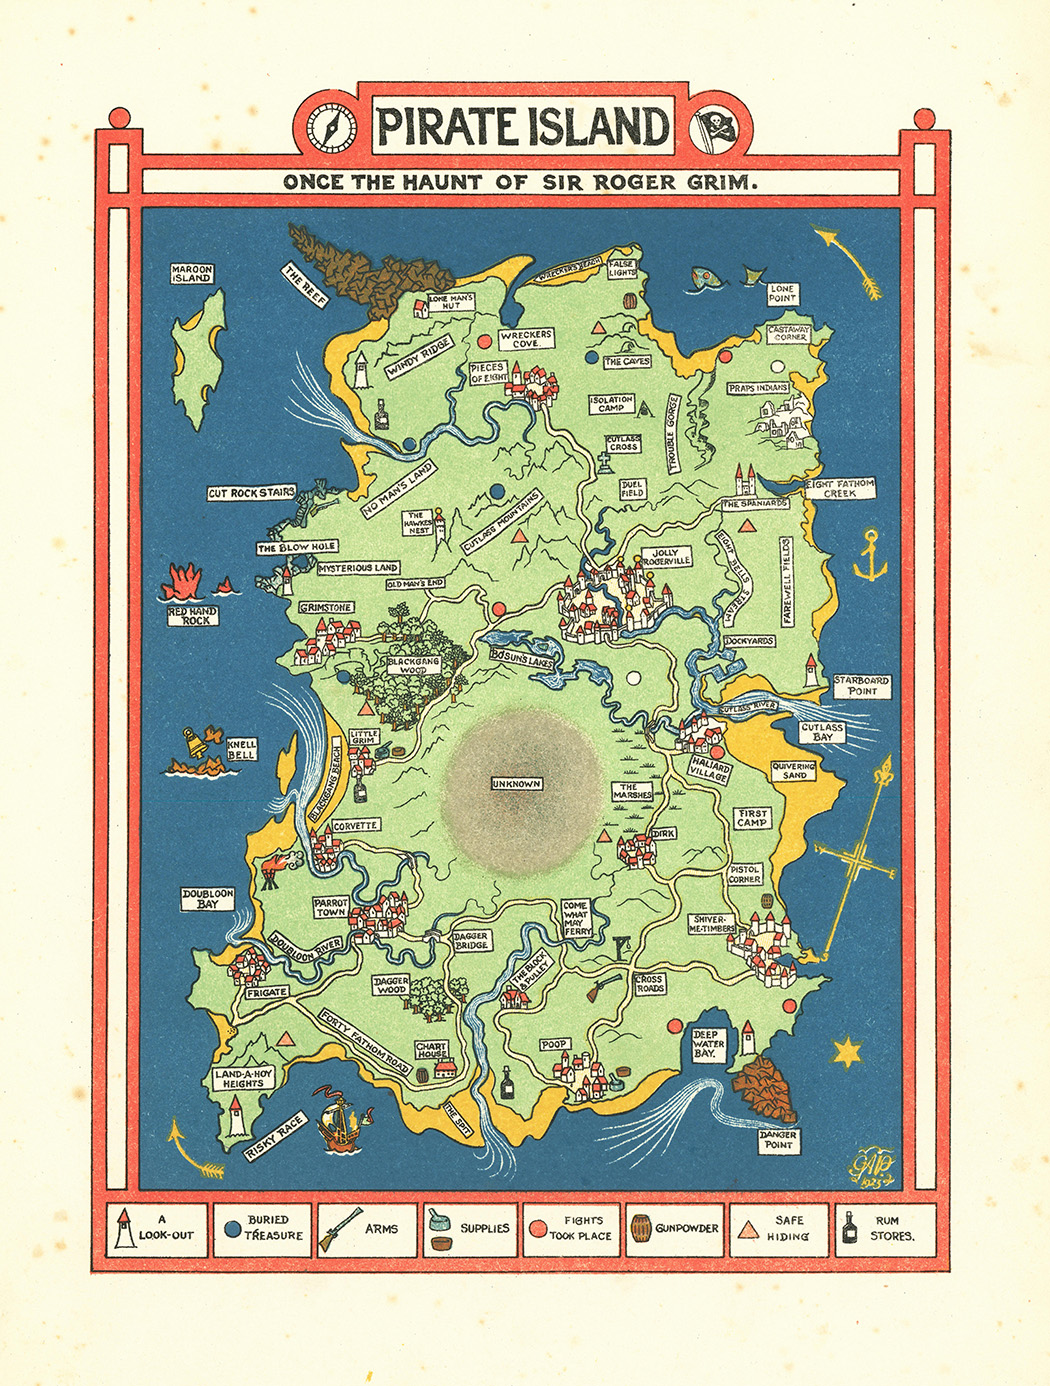 924 fantasy pictorial map - Pirate Island